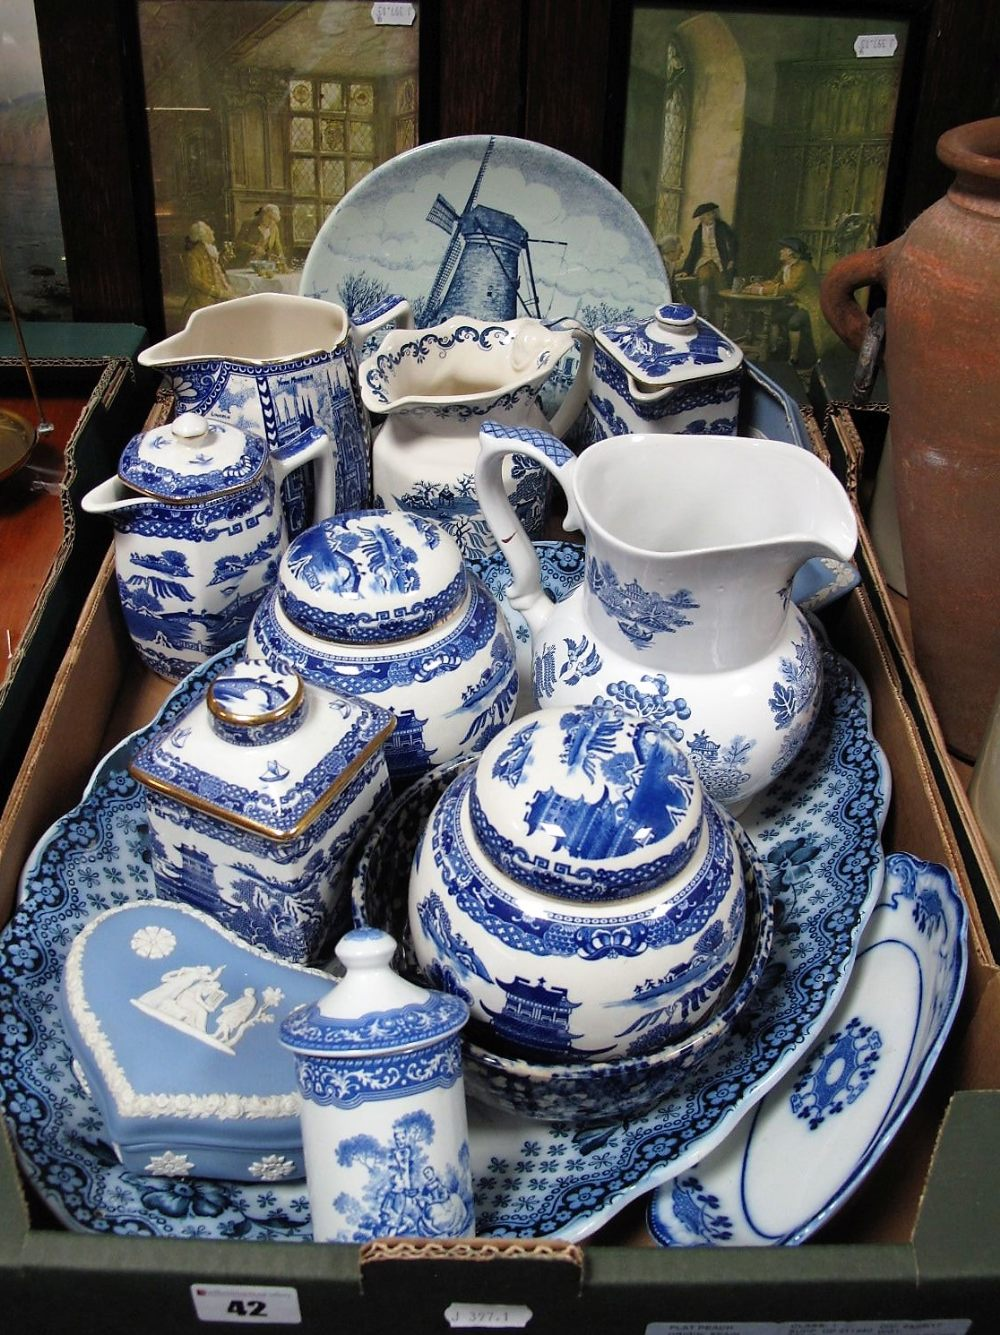 Lot 42 - Ringtons Blue and White Willow Pattern Ginger Jars, tea canister, jugs, together with Victorian oval